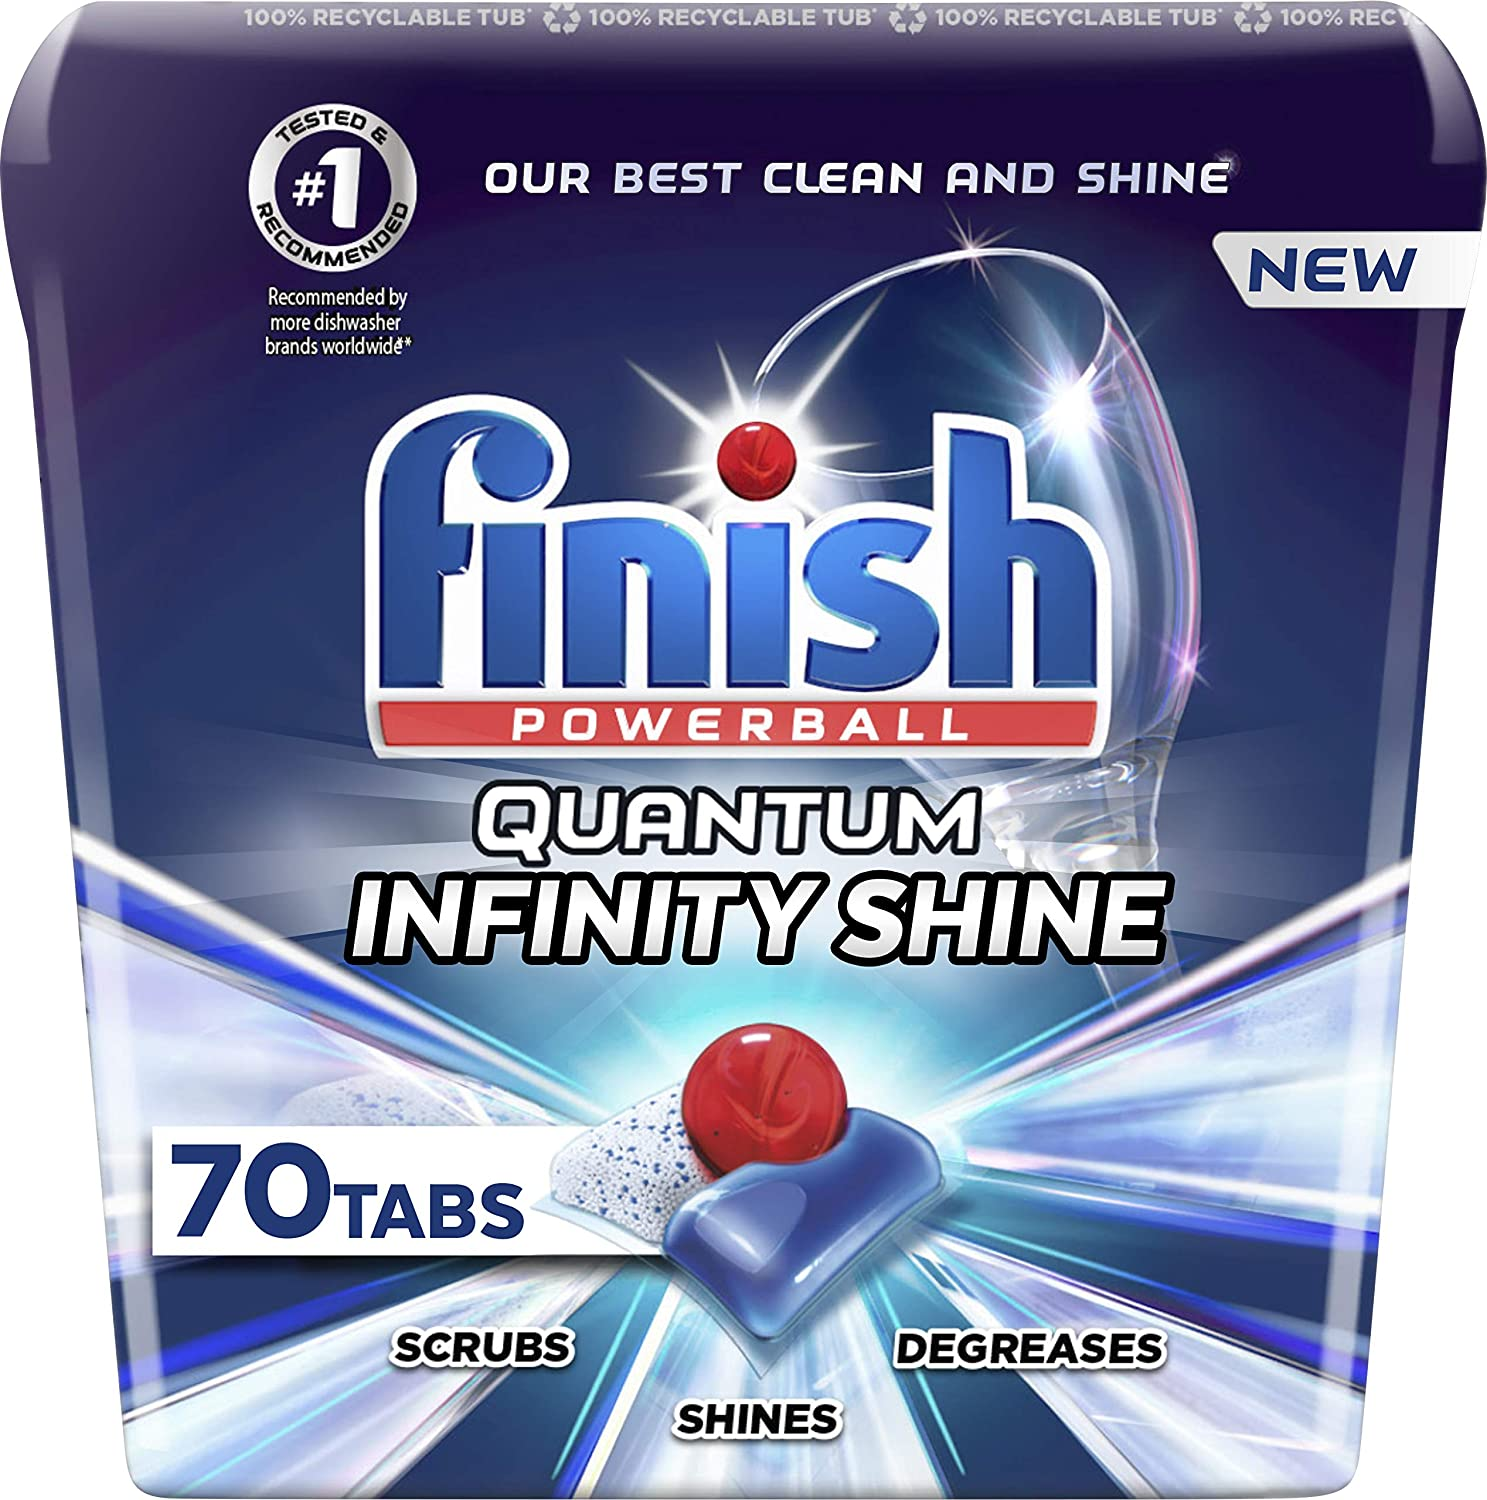 Finish Quantum Infinity Shine - 70 Count - Dishwasher Detergent - Powerball - Our Best Ever Clean and Shine - Dishwashing Tablets - Dish Tabs